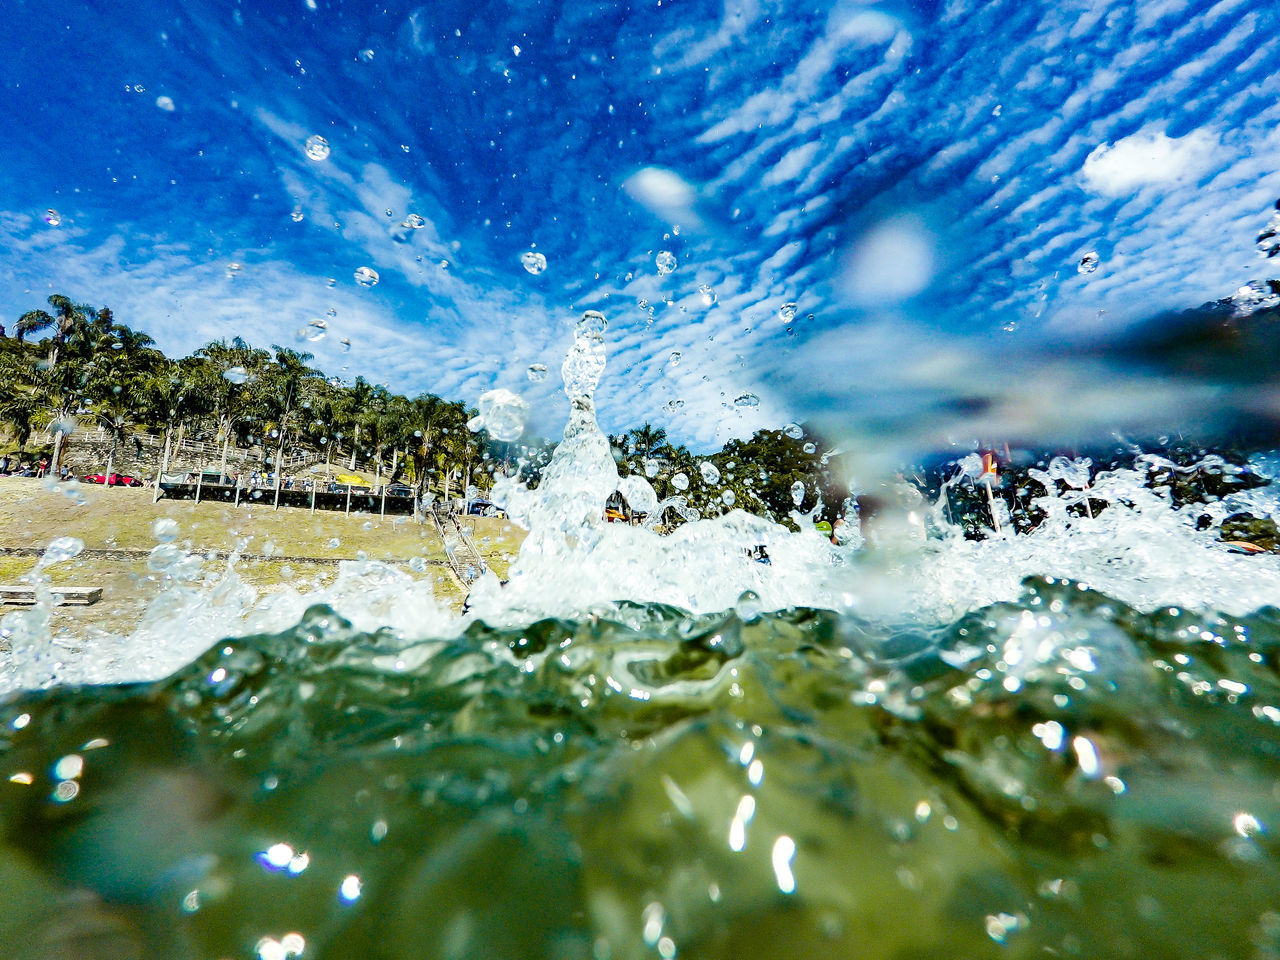 water, motion, nature, sport, sea, day, outdoors, splashing, scenics - nature, blue, beauty in nature, rock, no people, travel destinations, selective focus, solid, land, sunlight, cold temperature, swimming pool, surface level